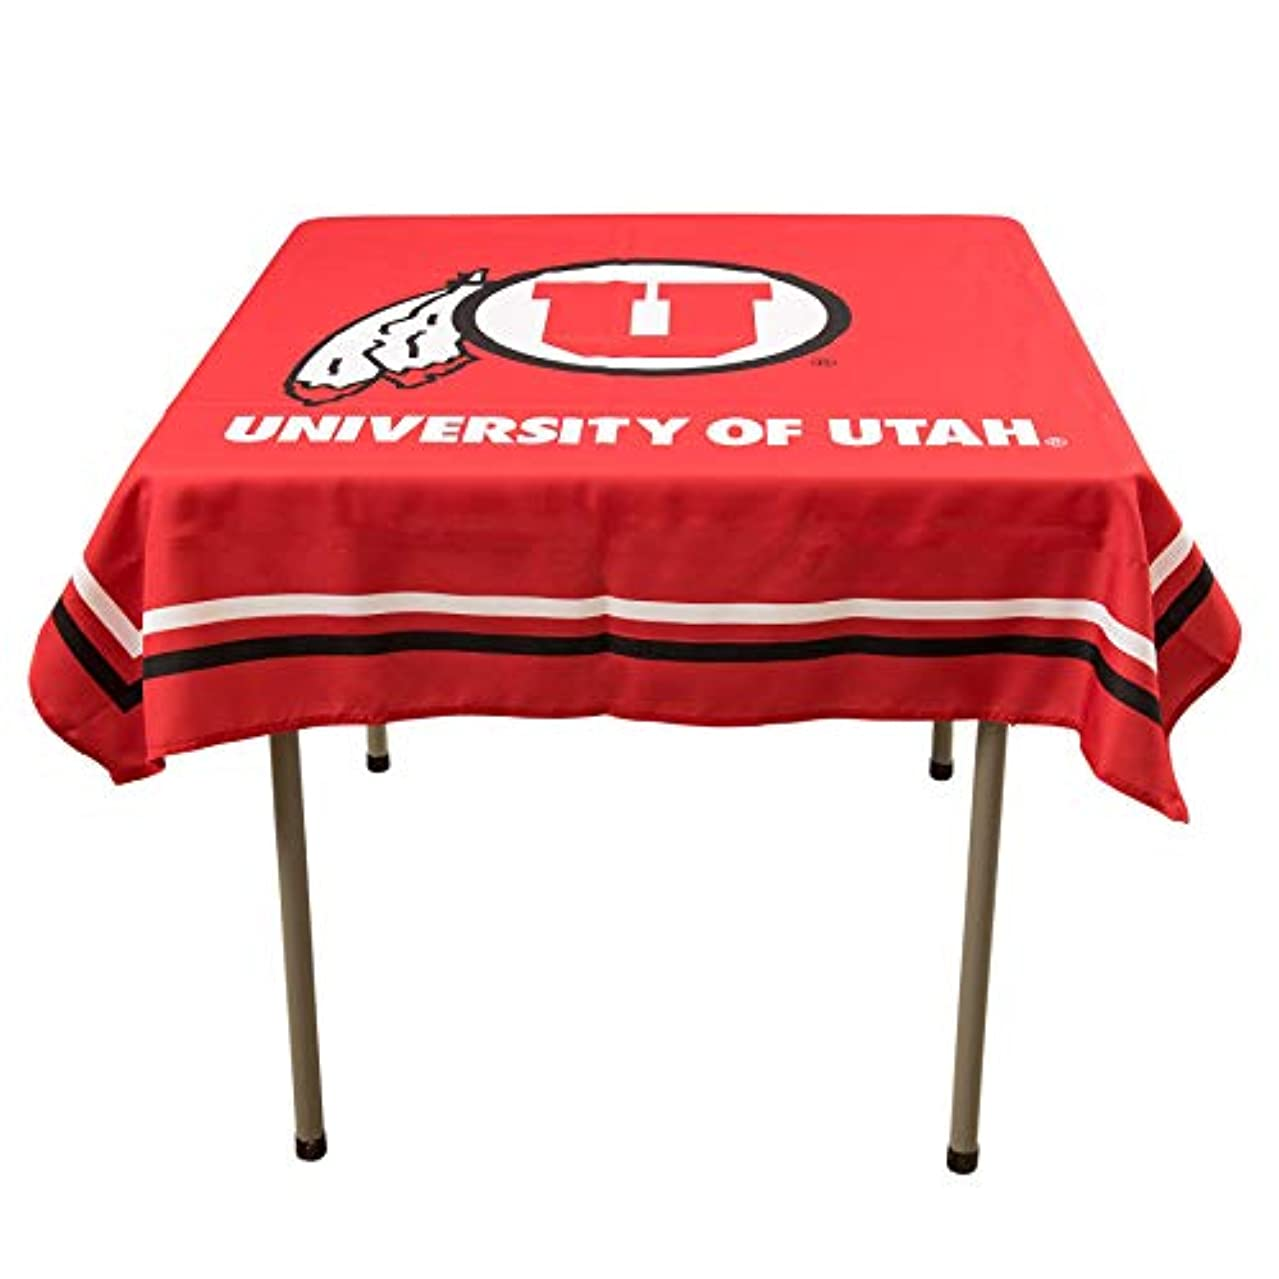 College Flags and Banners Co. Utah Utes Logo Tablecloth or Table Overlay